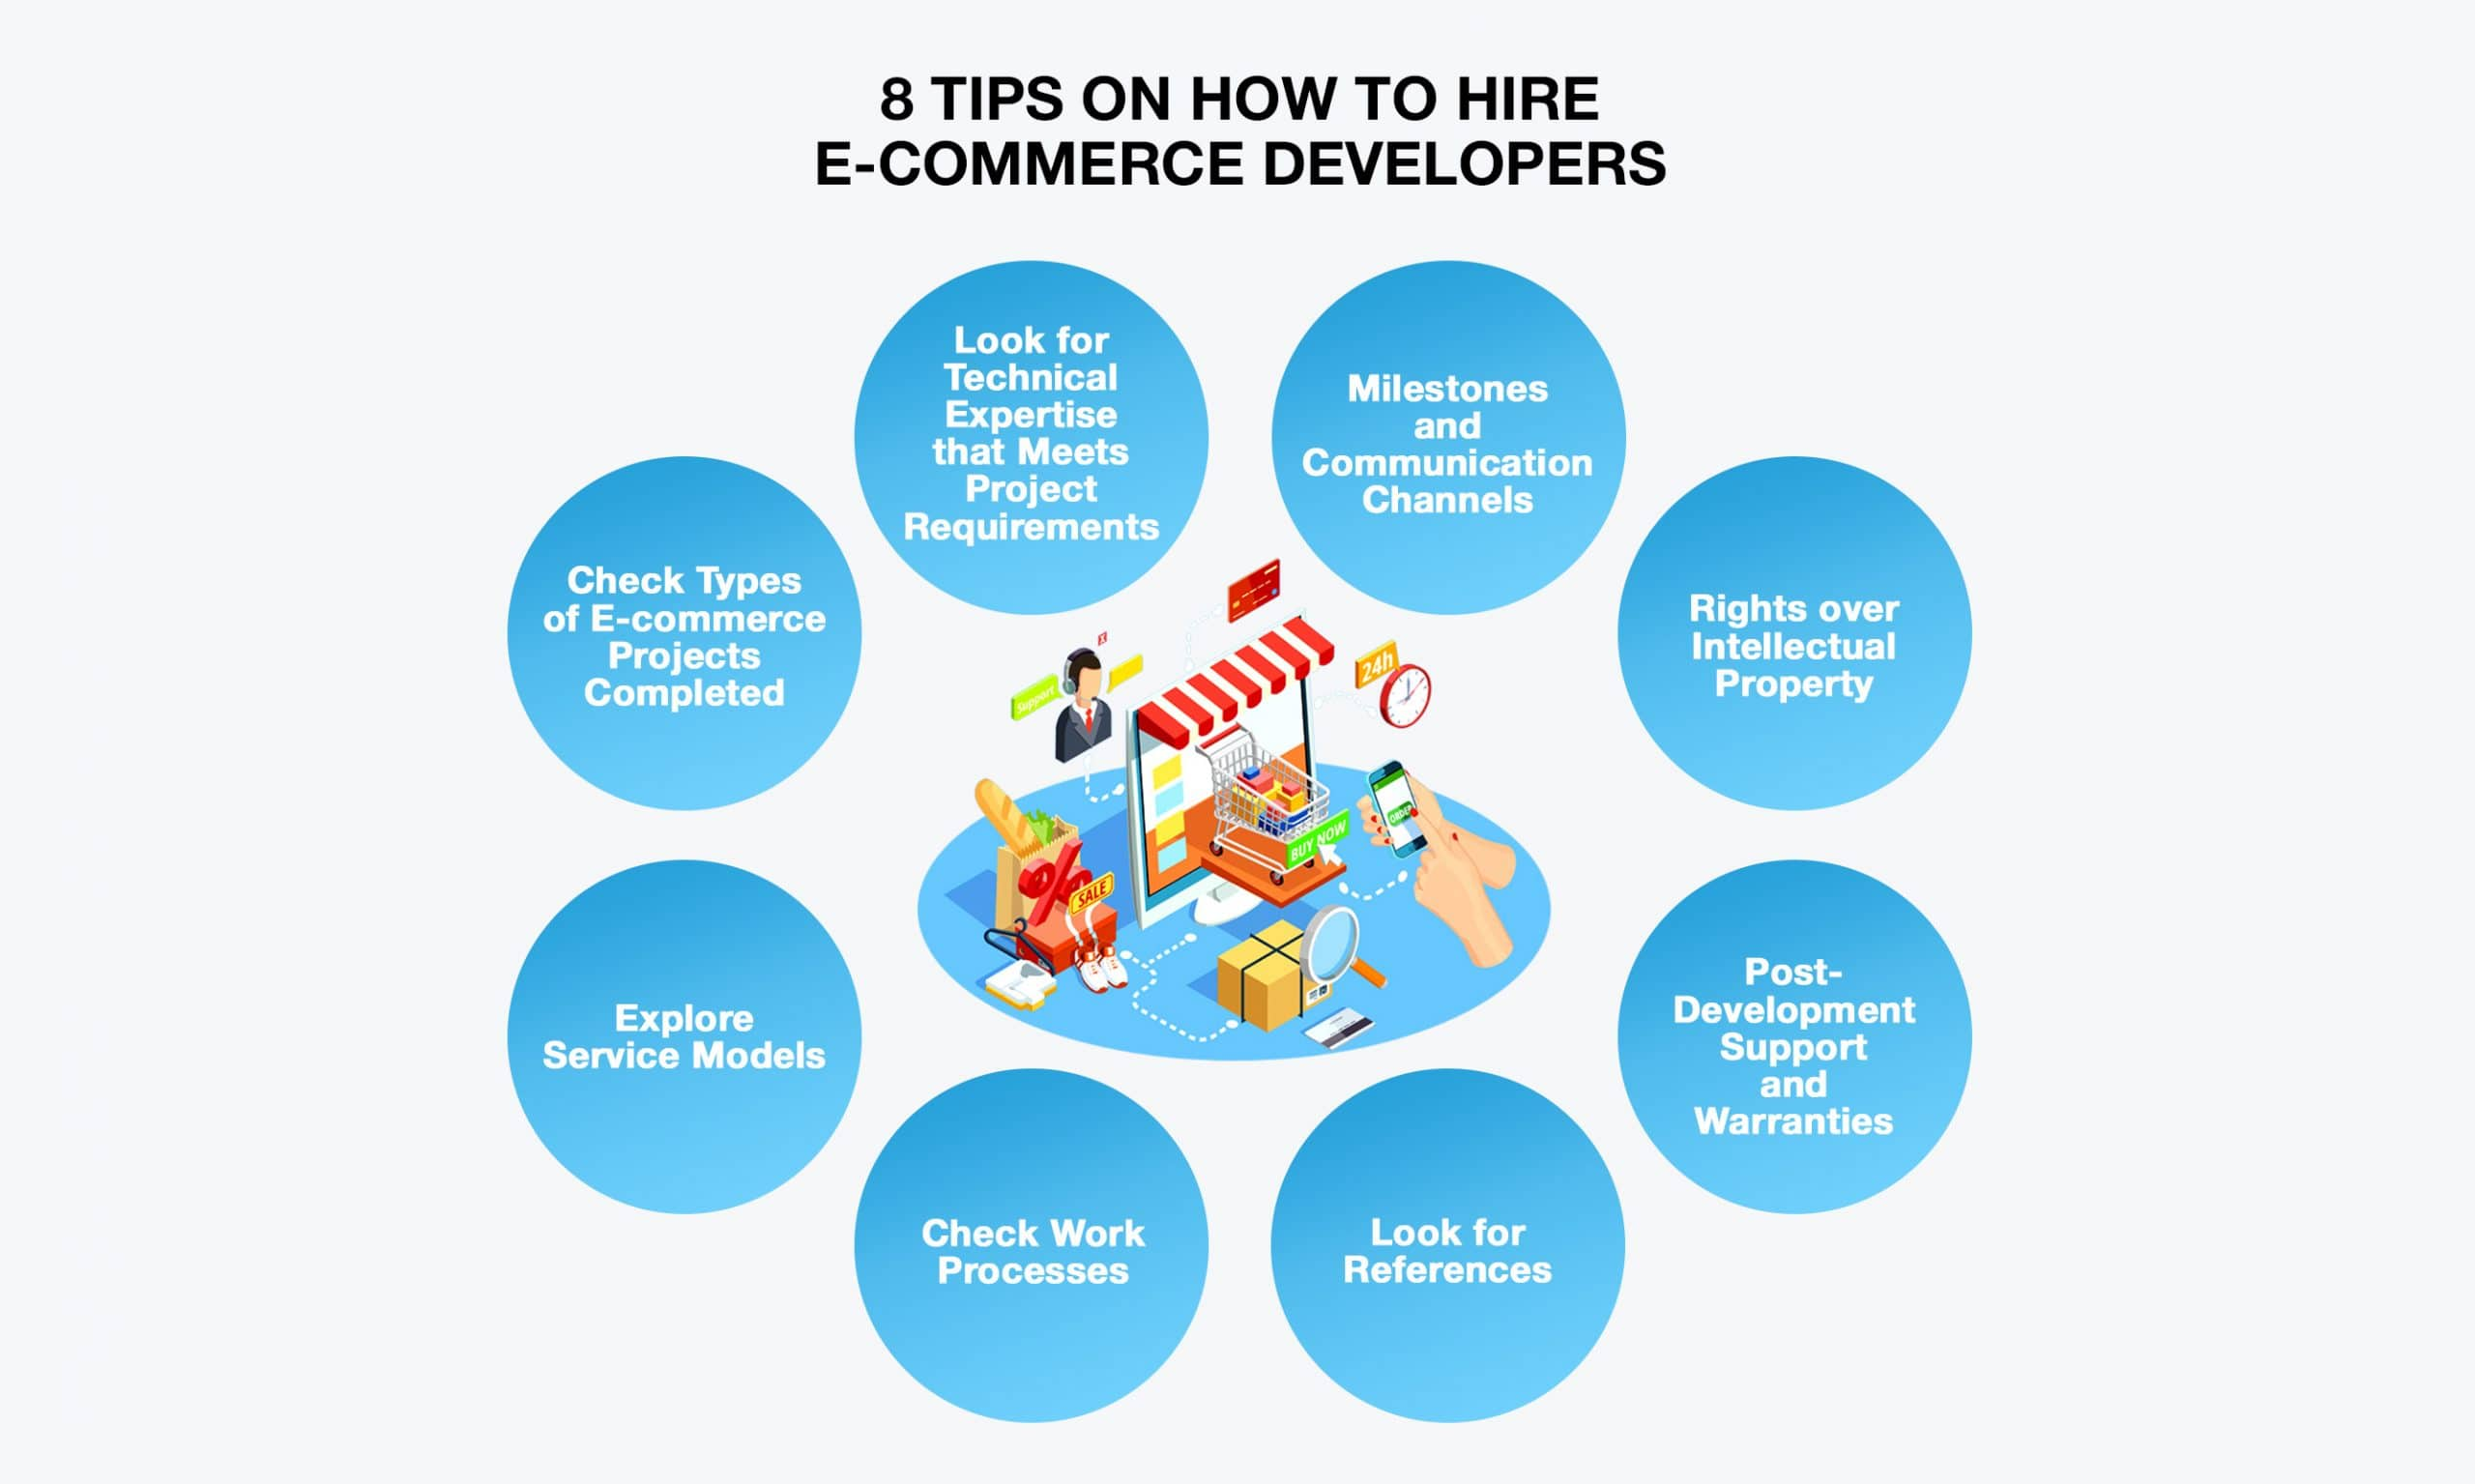 Tips on How to Hire E-commerce Developers